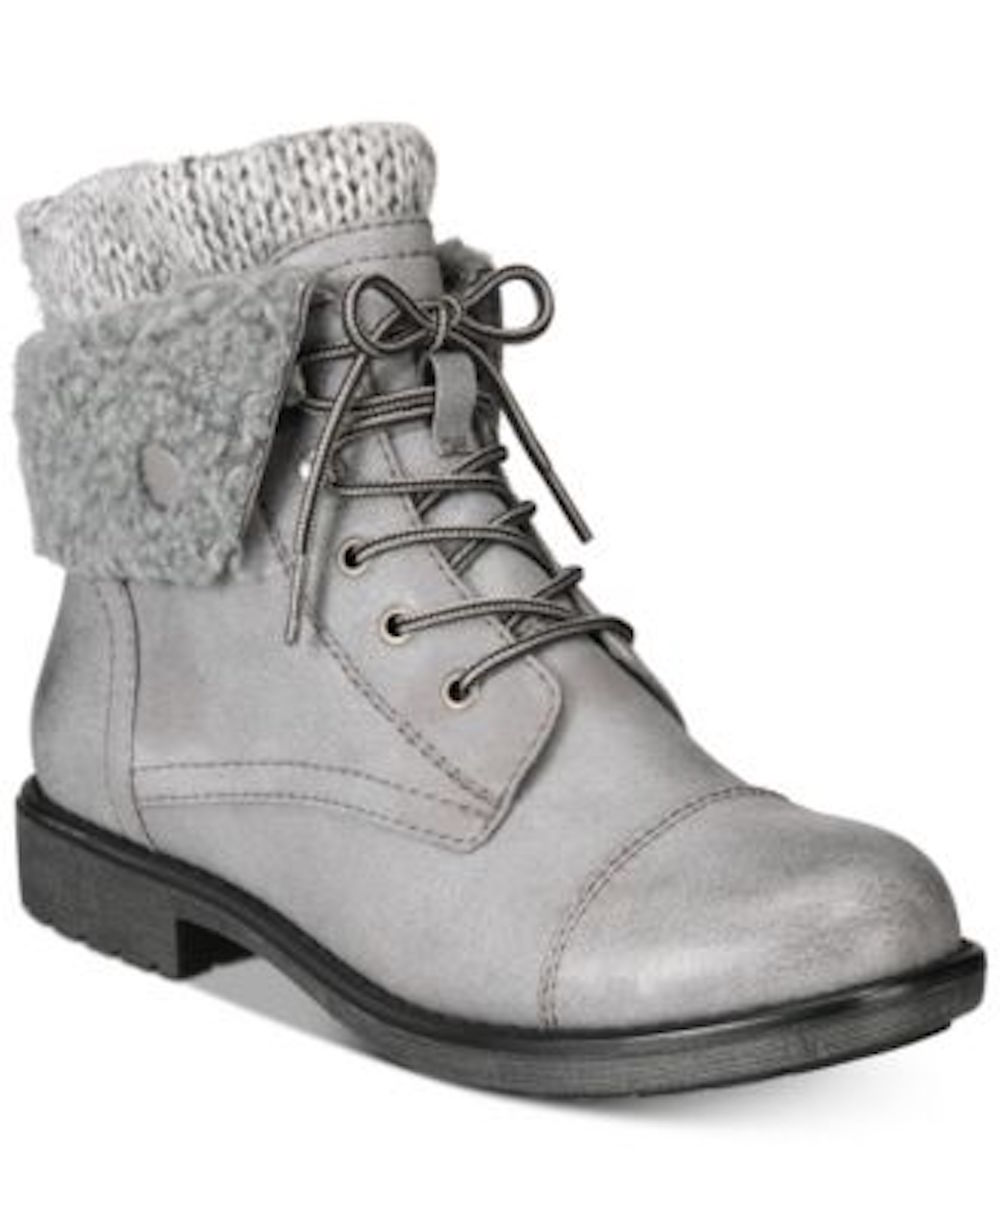 32c21a64aa3 Details about Cliffs by White Mountain Womens Decker Fabric Round Toe Ankle  Fashion Boots